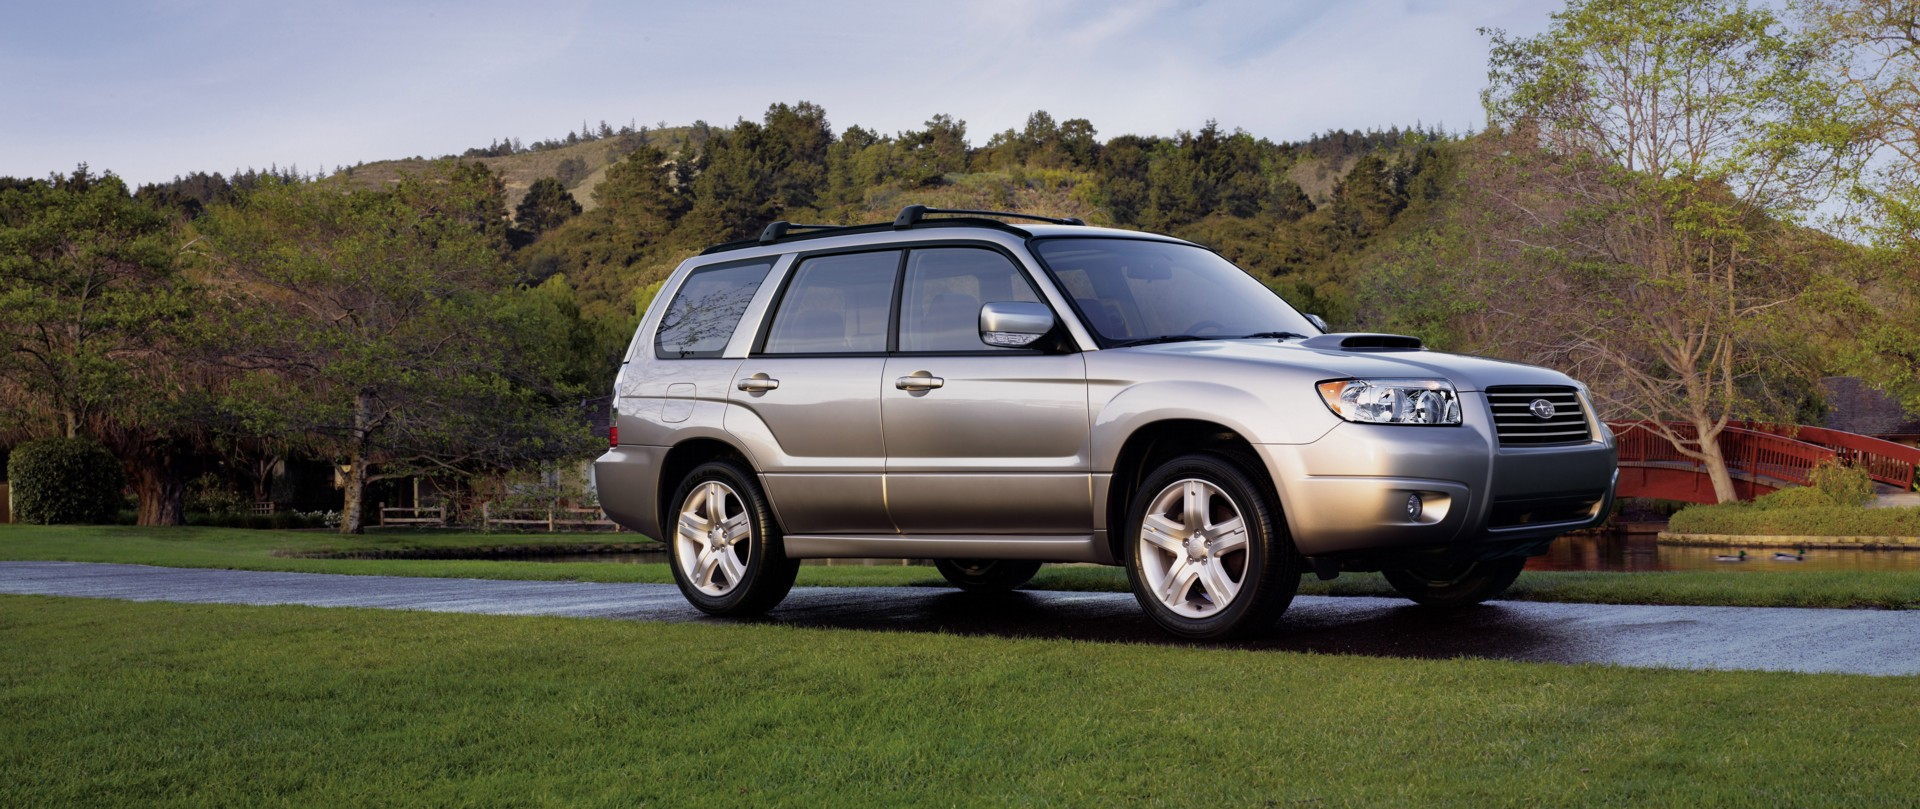 2007 subaru forester pictures history value research news. Black Bedroom Furniture Sets. Home Design Ideas